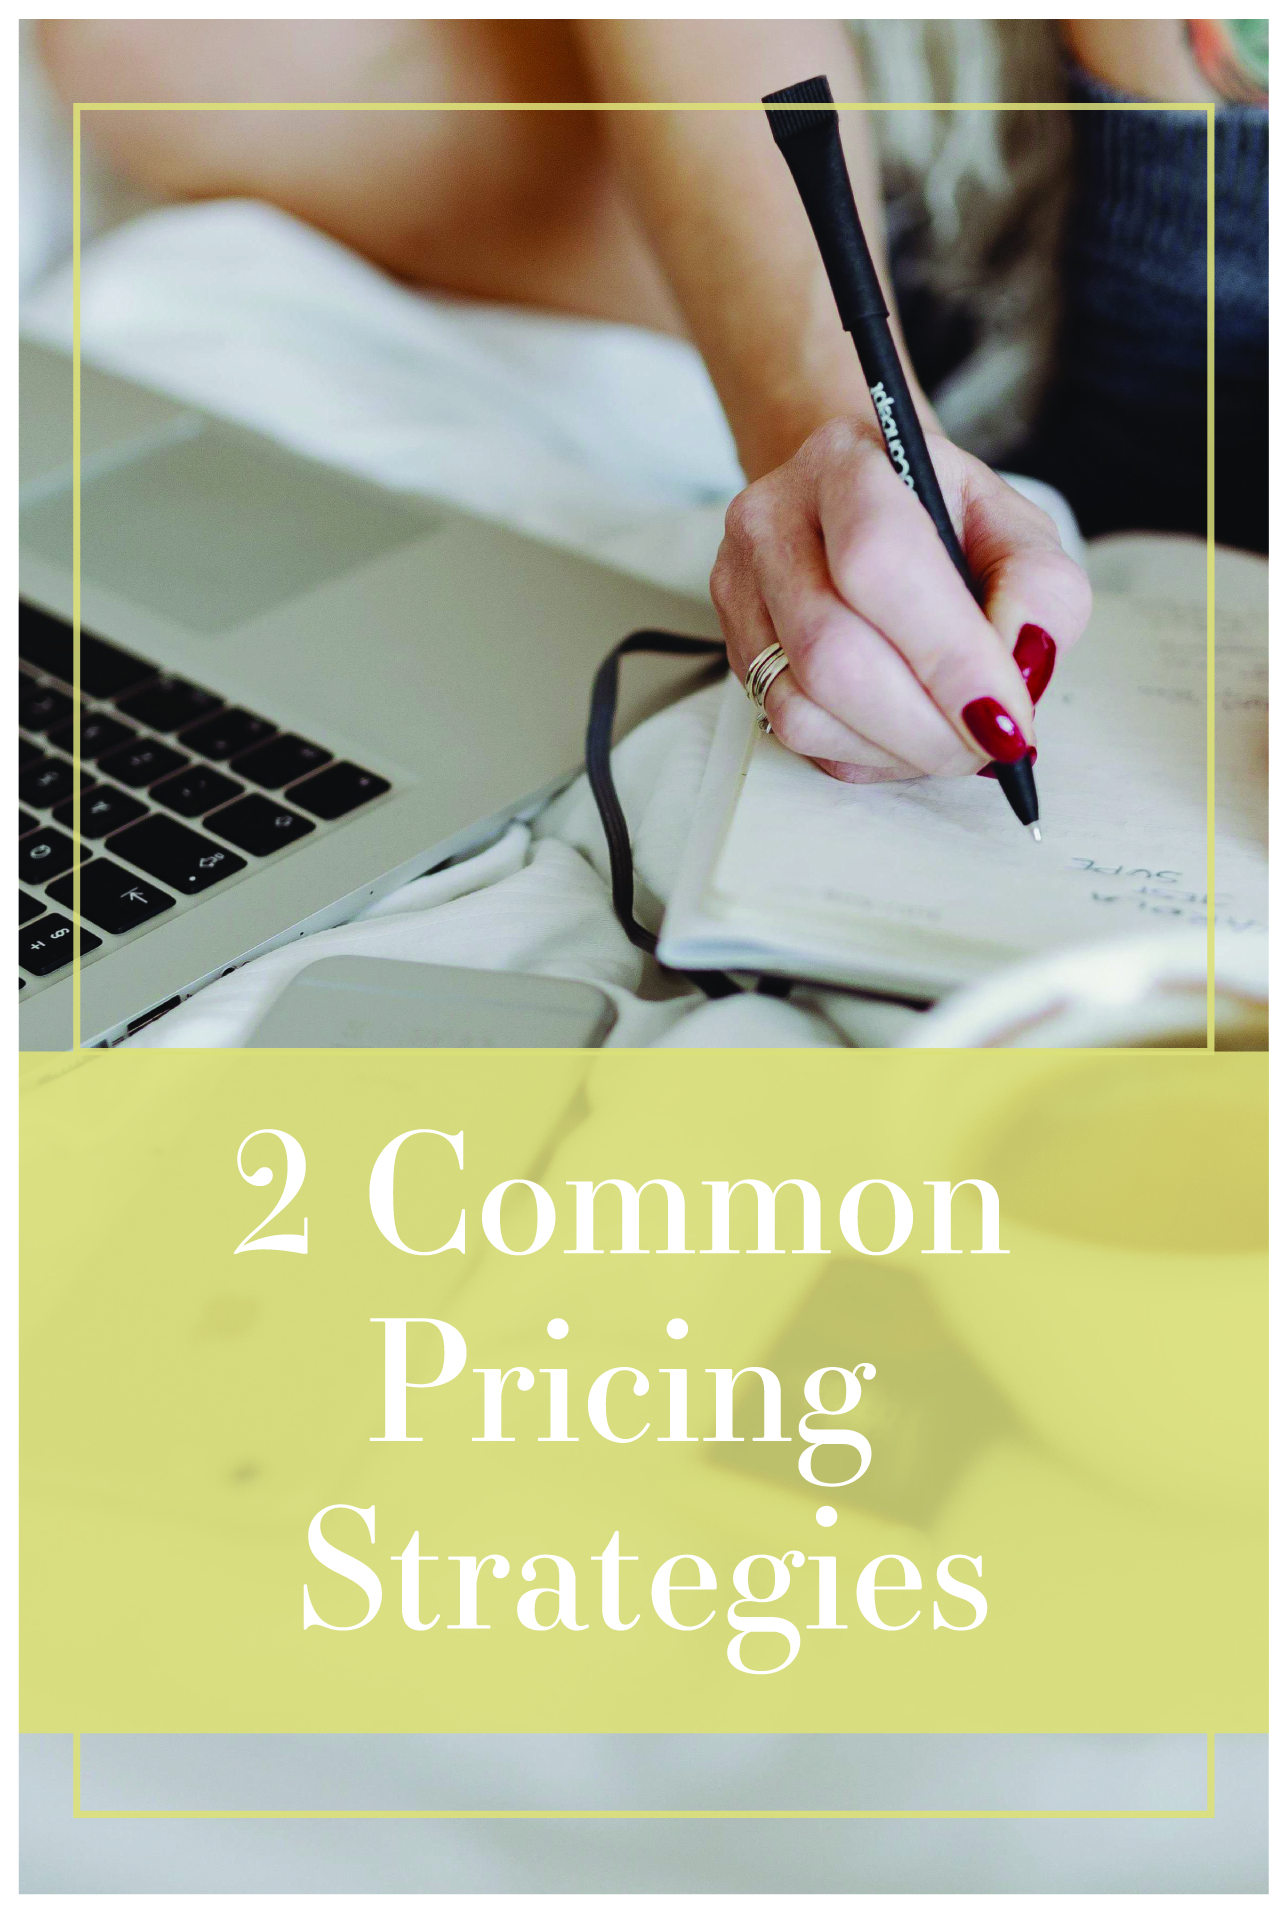 2 Common Pricing Strategies